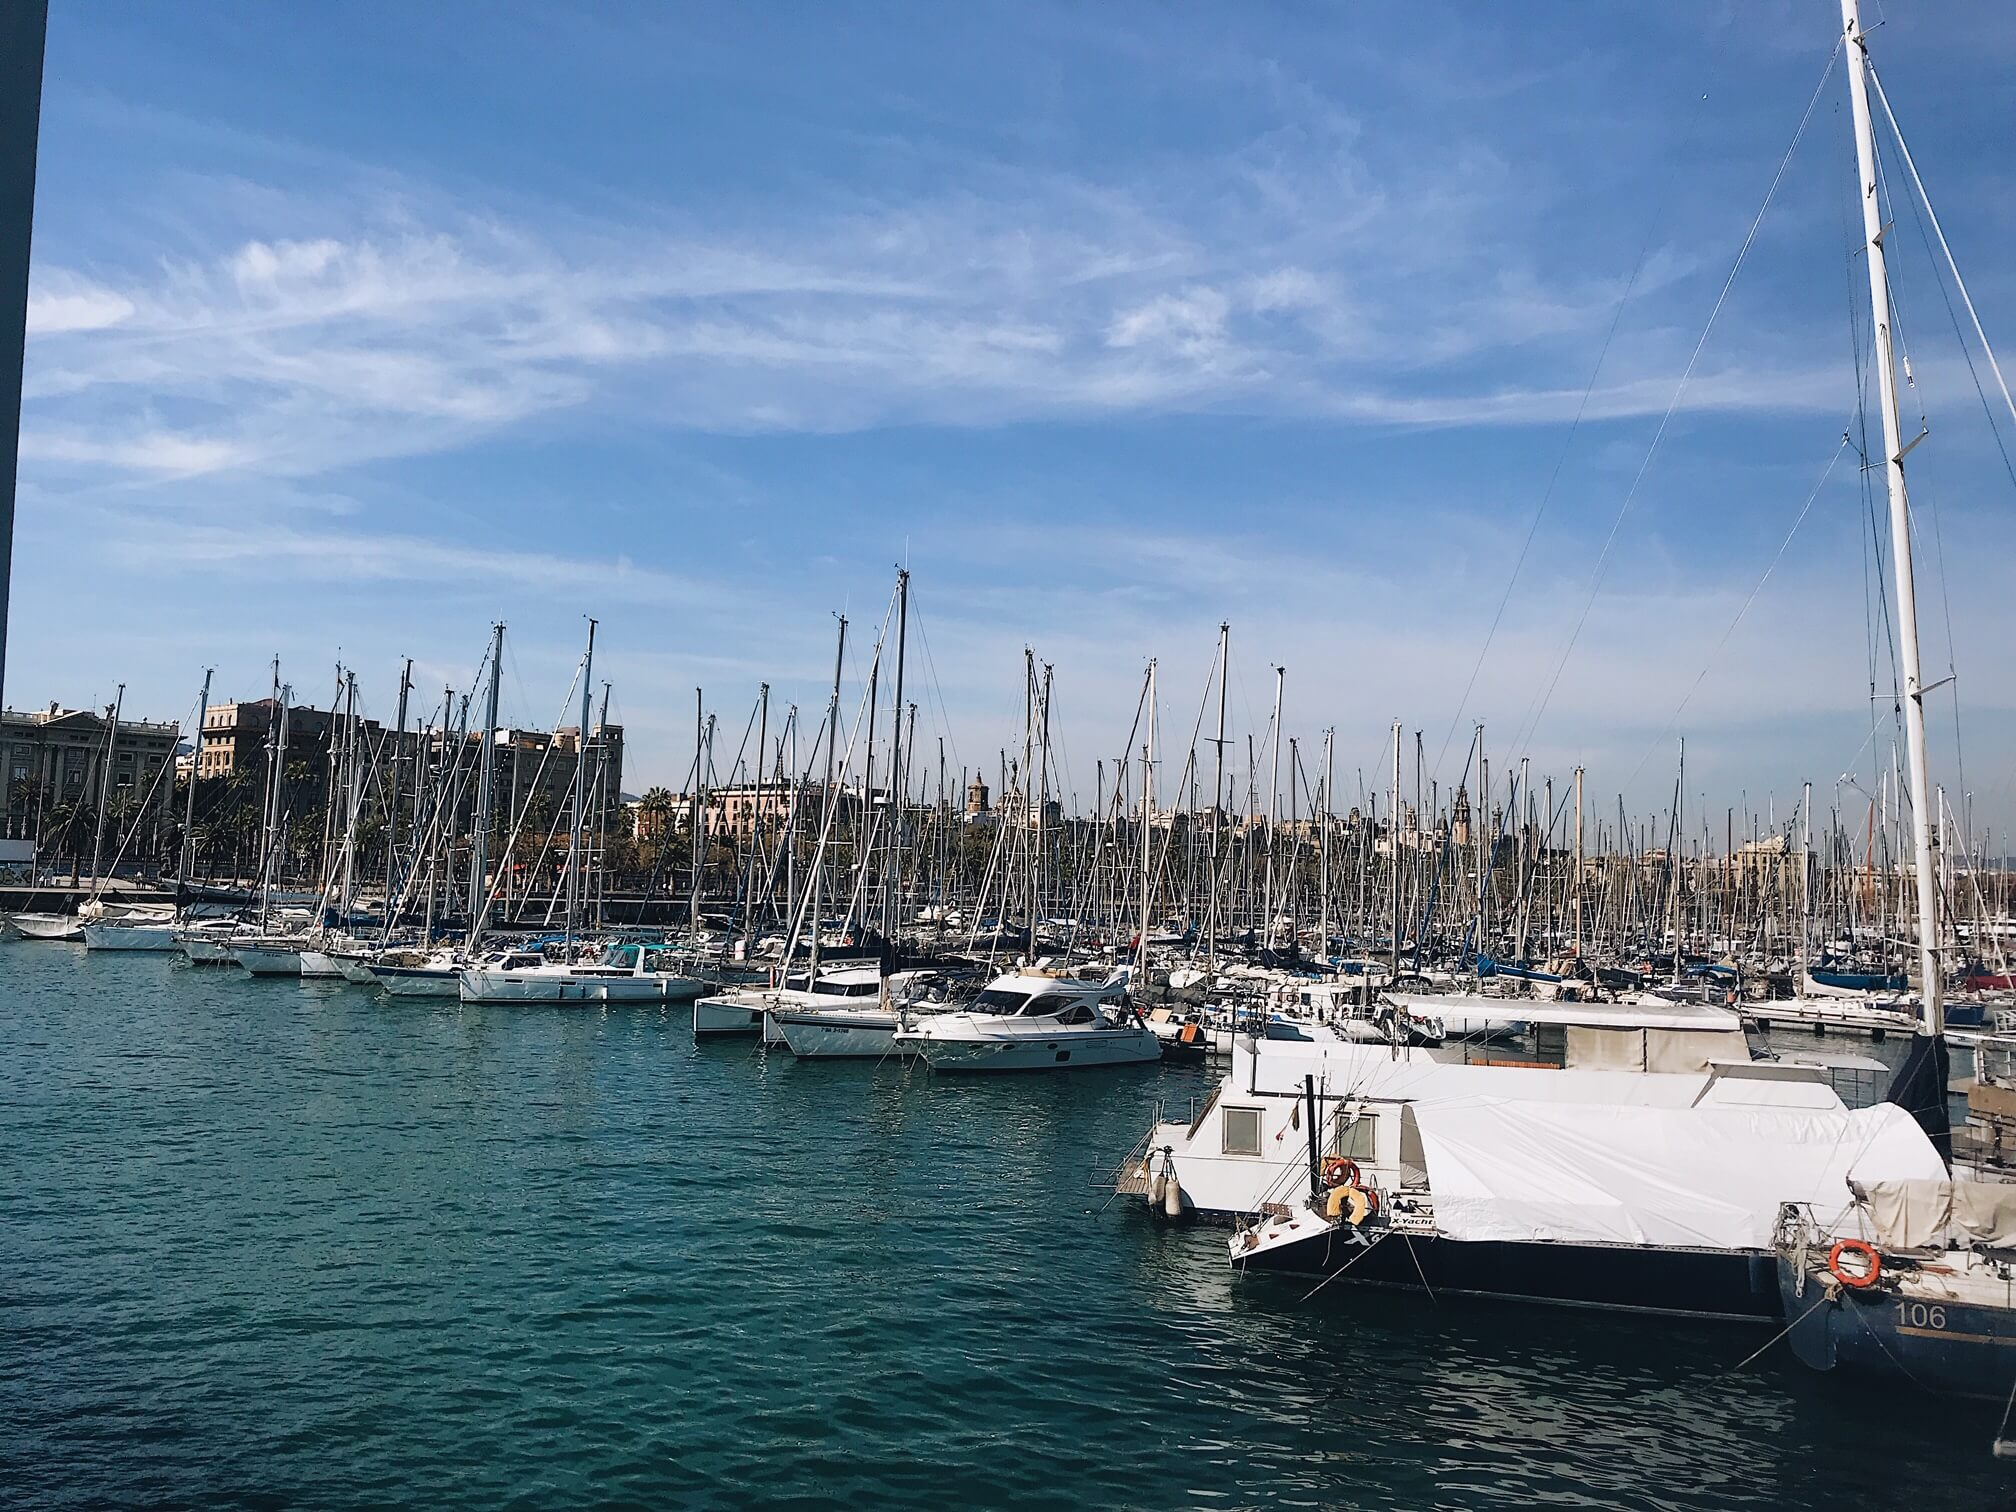 Barcelona in 2 days: Visit Port Vell